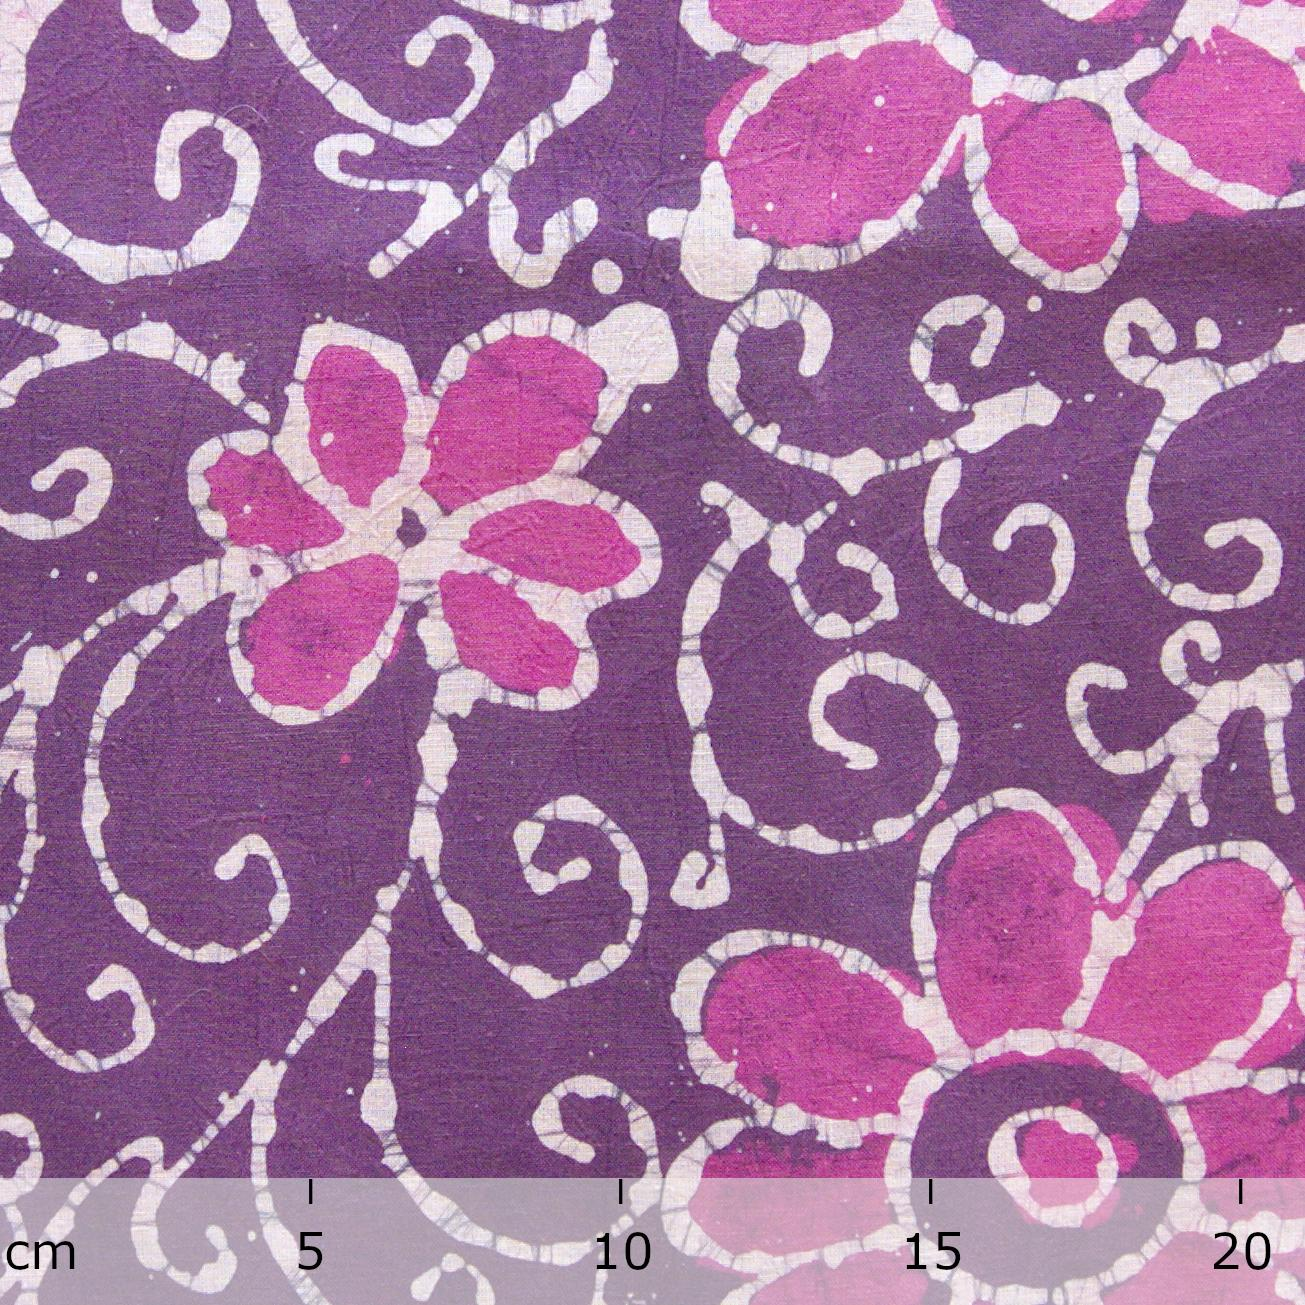 4 - SHA21 - 100% Block-Printed Batik Cotton Fabric From India - Flower Power Motif - Ruler - Live